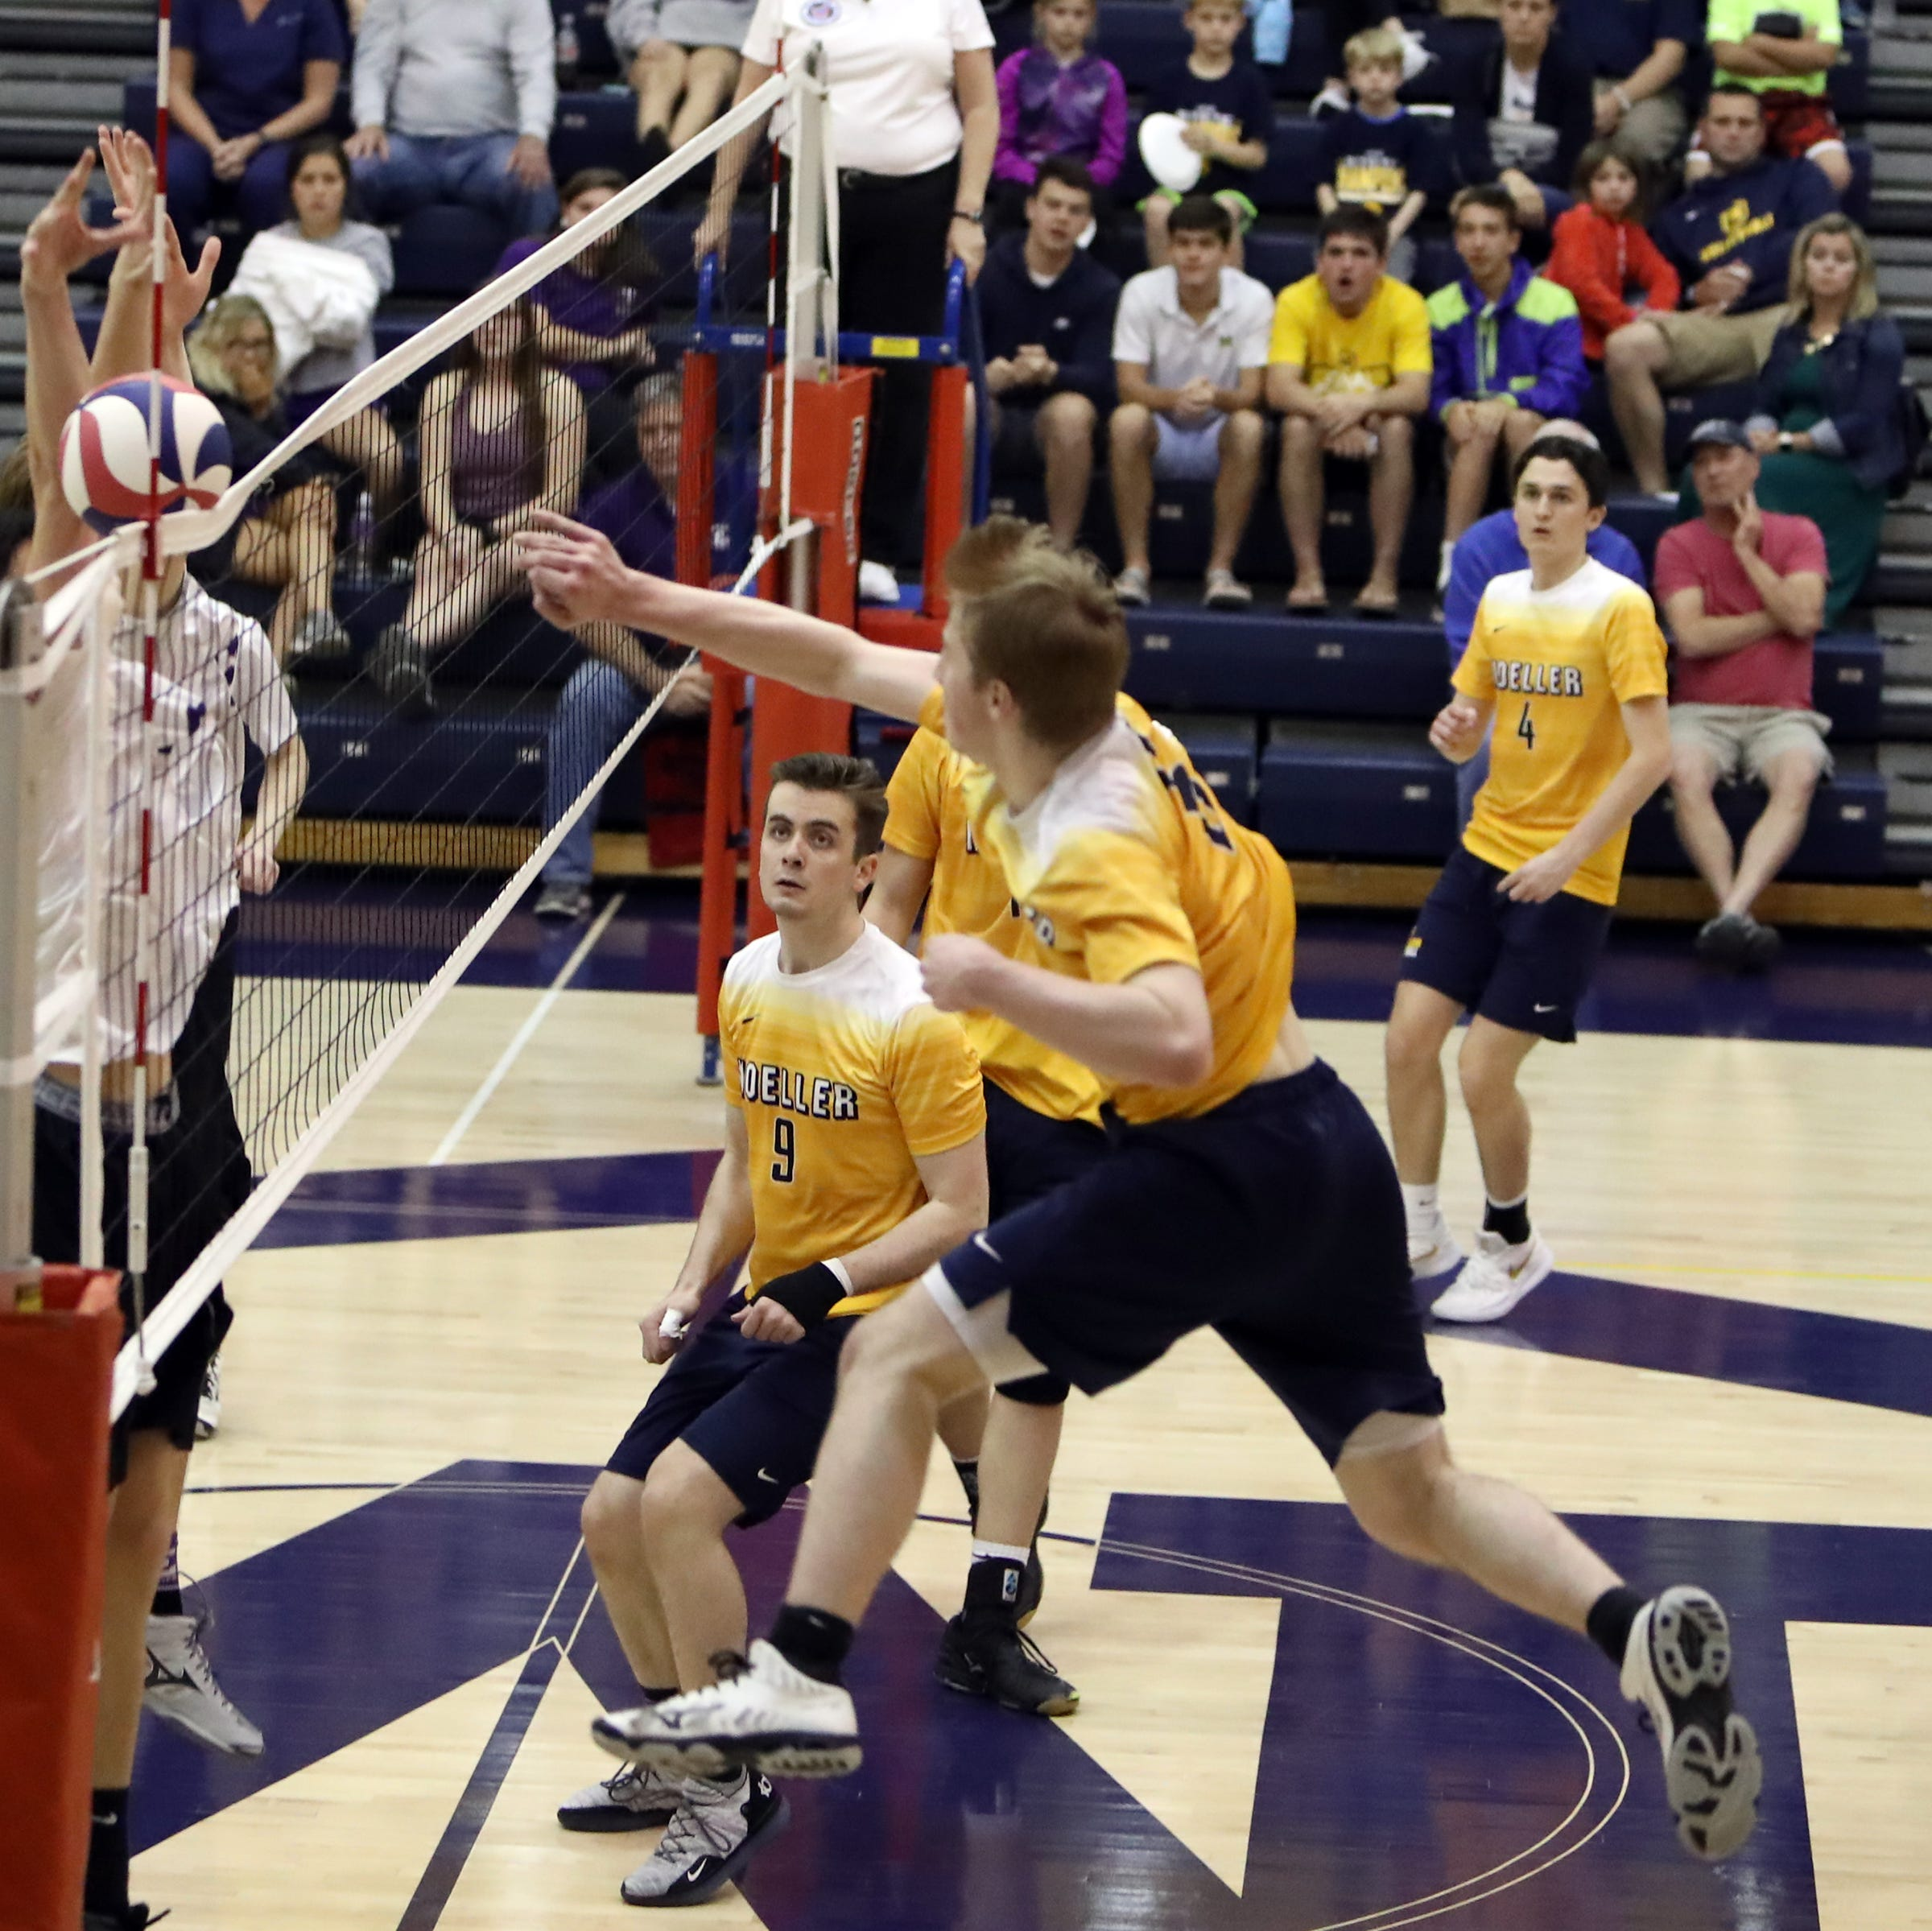 Moeller outside hitter Luke Fuller slams home match point in the match between the Elder Panthers and the Moeller Crusaders at Moeller High School. Moeller defeated Elder 25-18, 26-24, 25-21.